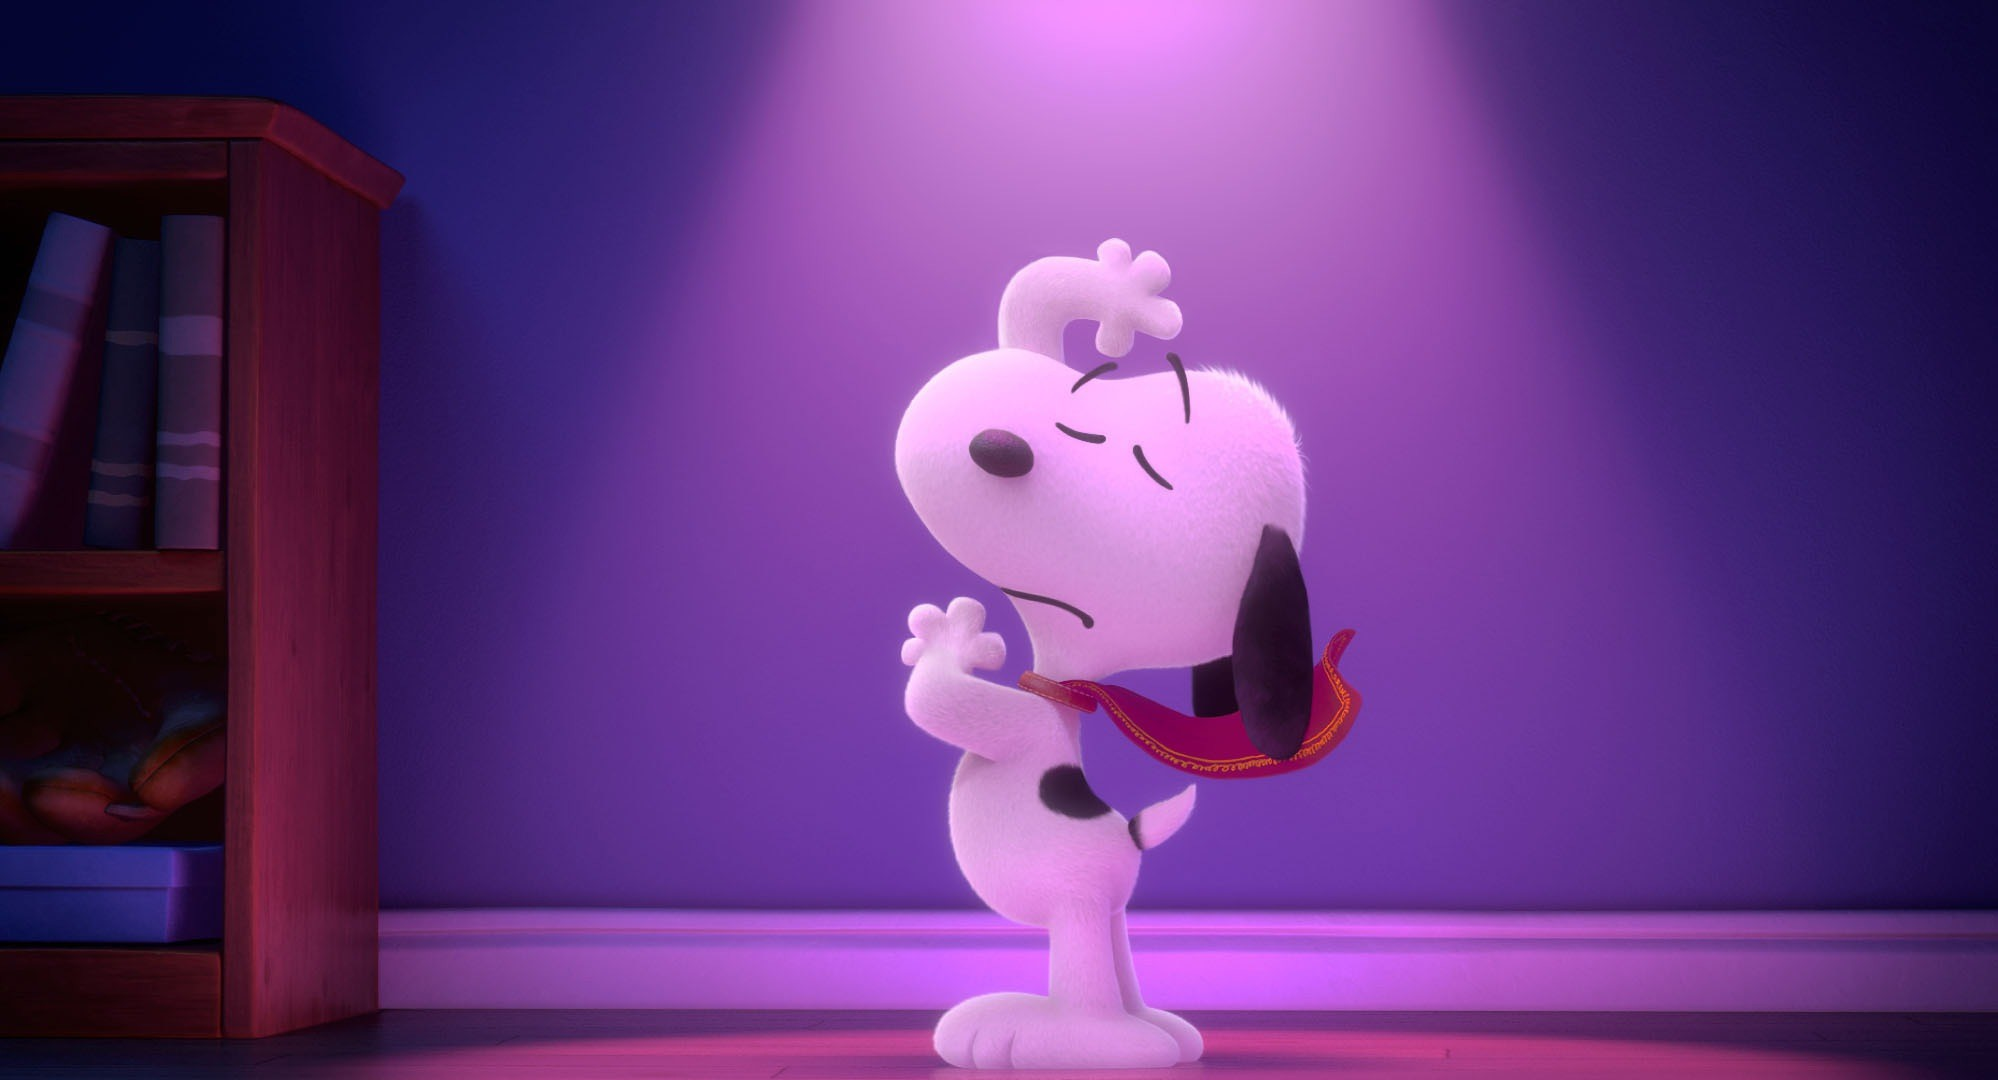 (px) – Snoopy Wallpapers, Sunny Bischof